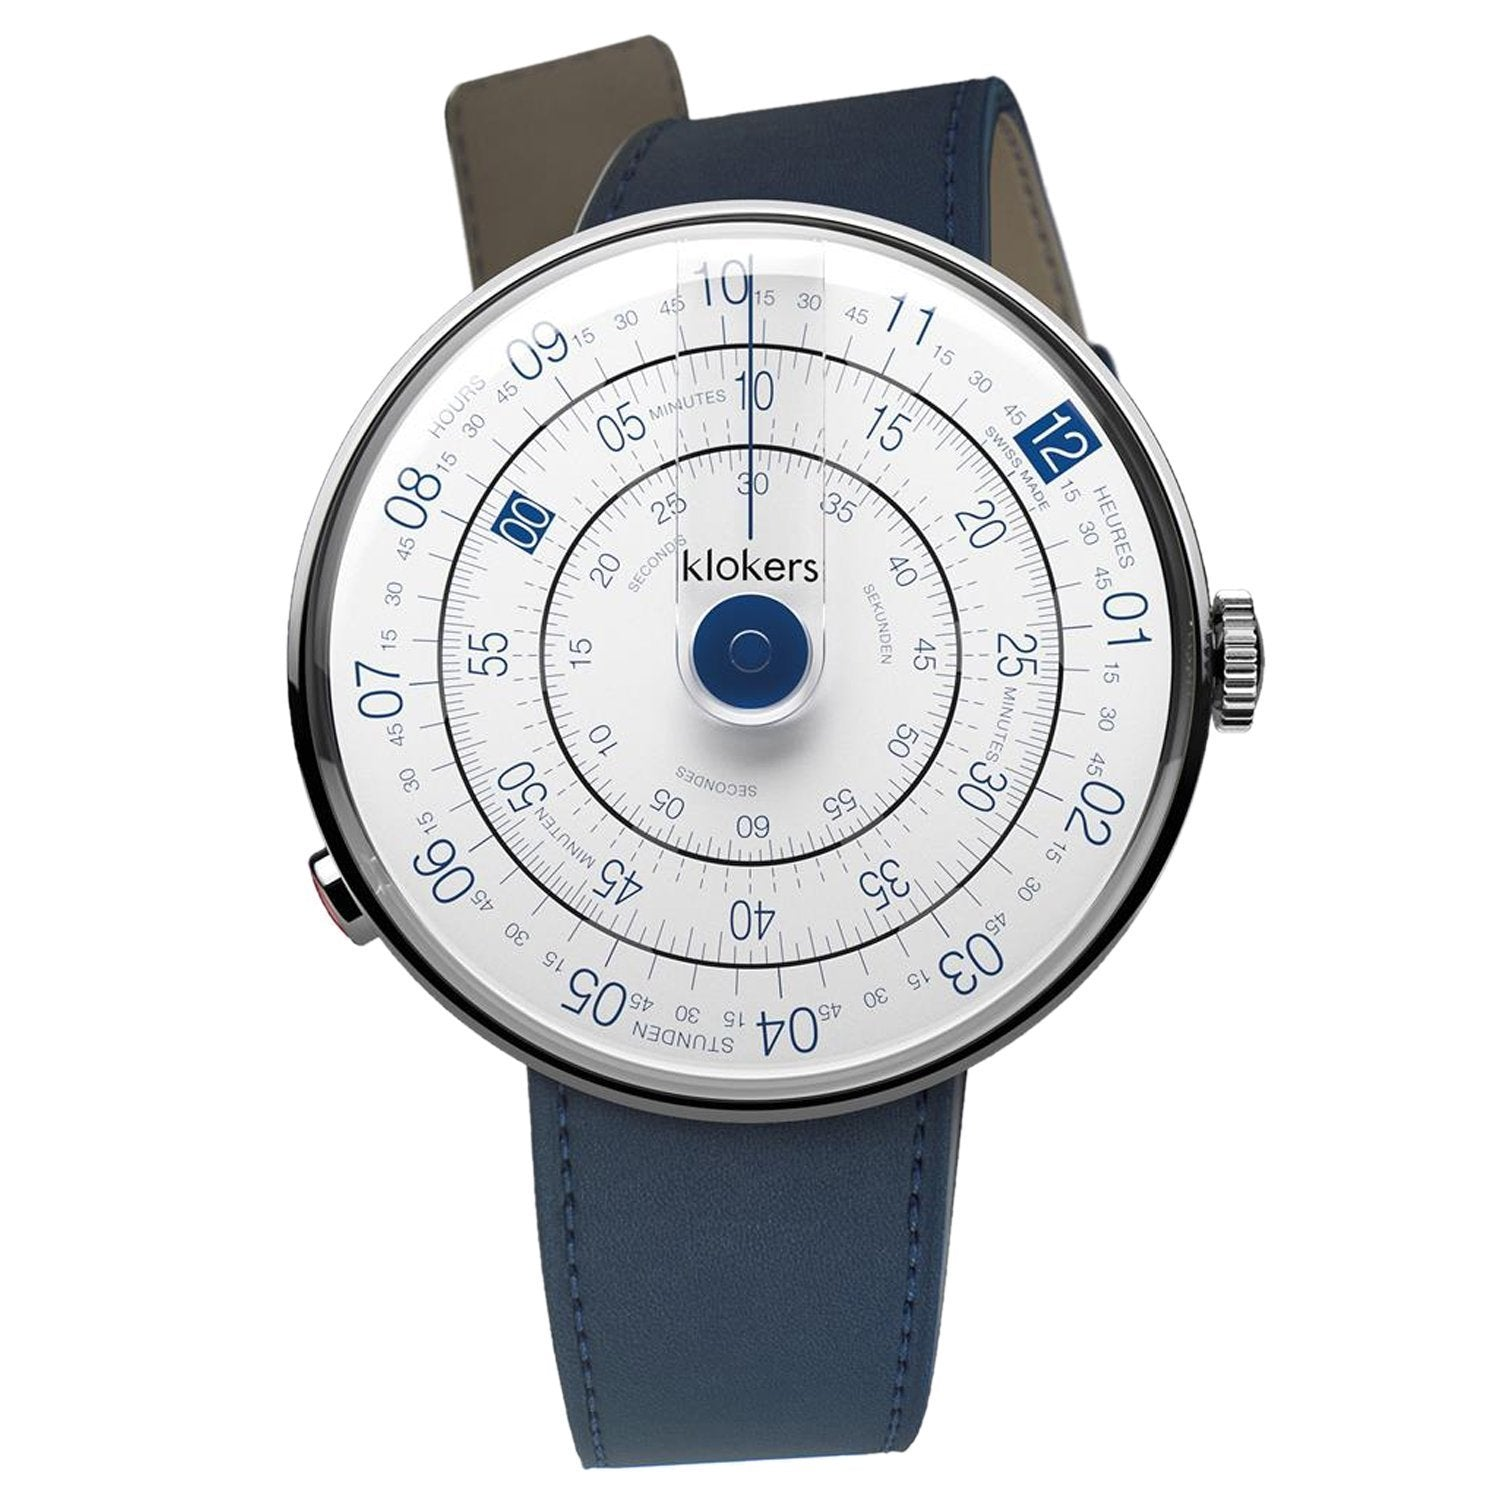 Klokers Klok 01 White Leather - Watches & Crystals